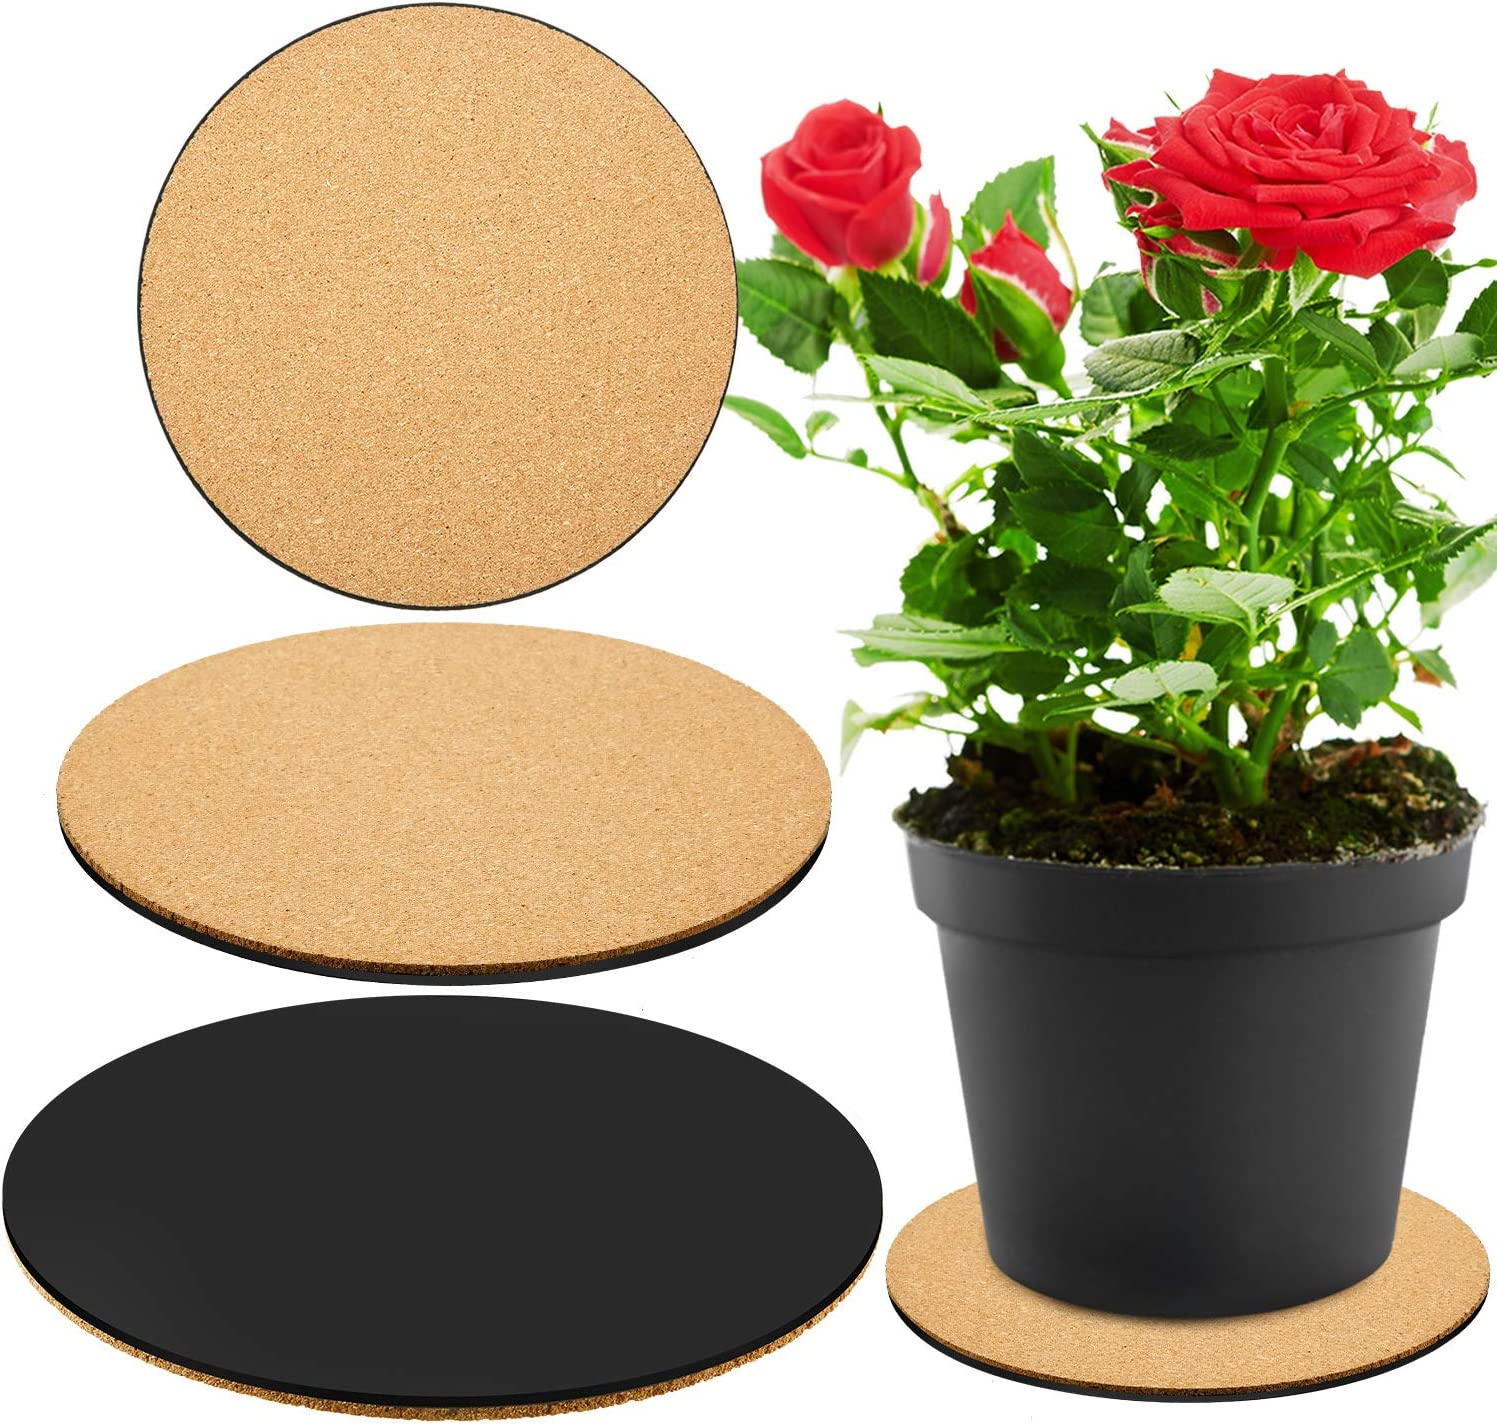 4 Inches, 6 Inches, 8 Inches DIY Craft Project 3 Pieces Cork Plant Mat Round Cork Plant Coasters DIY Cork Pad Plant Plate Pad for Gardening Indoor and Outdoor Pots